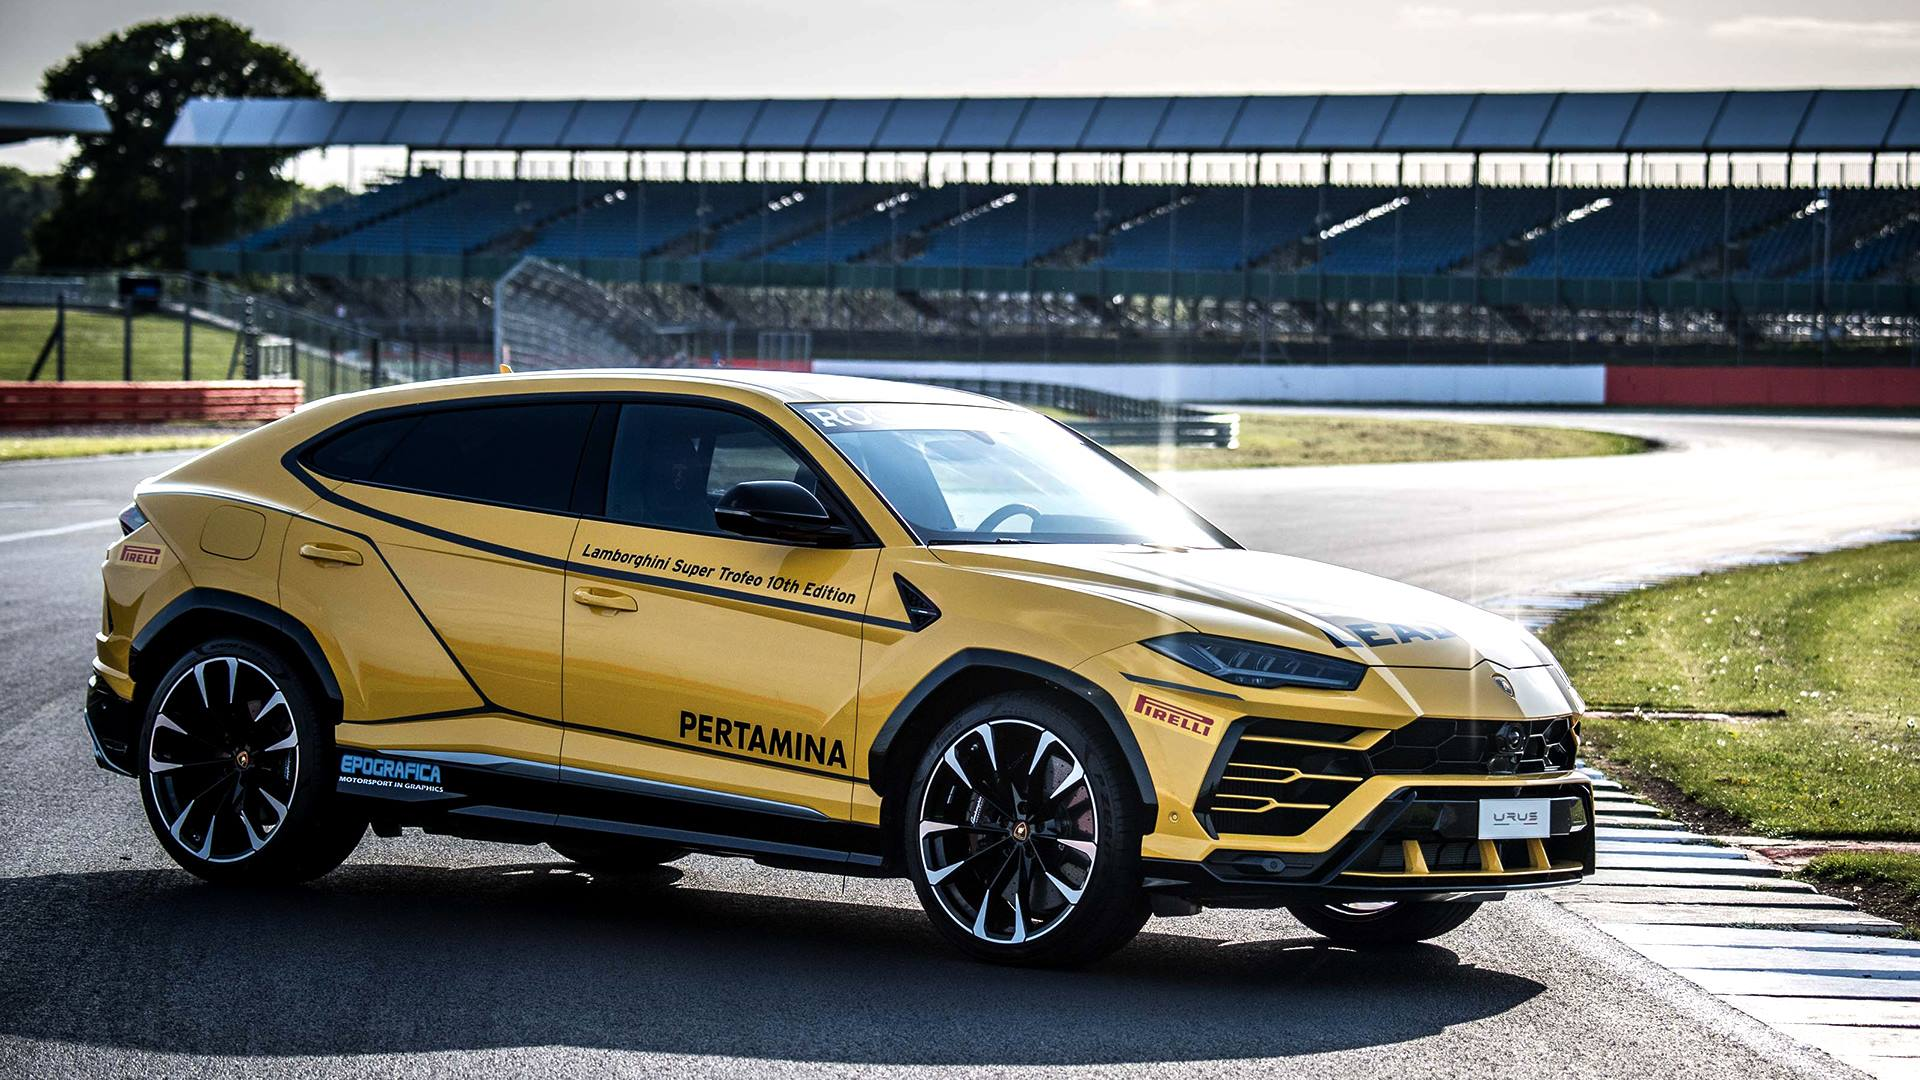 Mustang Kit Car >> Lamborghini Urus Looks Ready To Lead The Super Trofeo Series